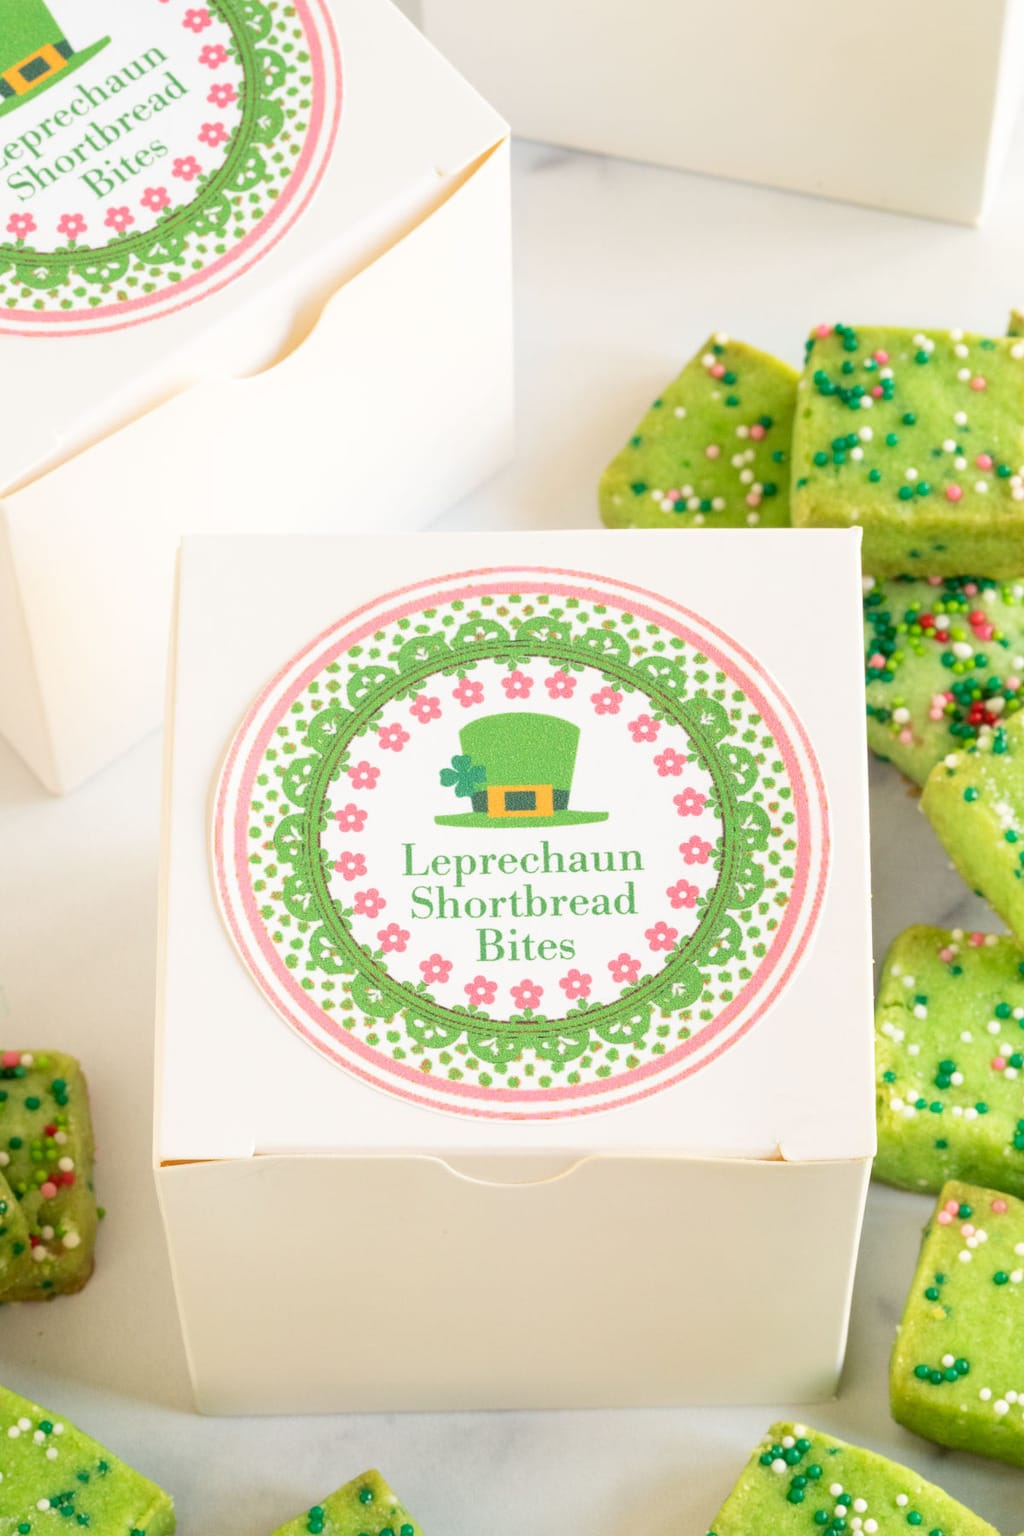 Extreme closeup vertical photo of Leprechaun Shortbread Bites in a small white gift box with a custom gift label attached.